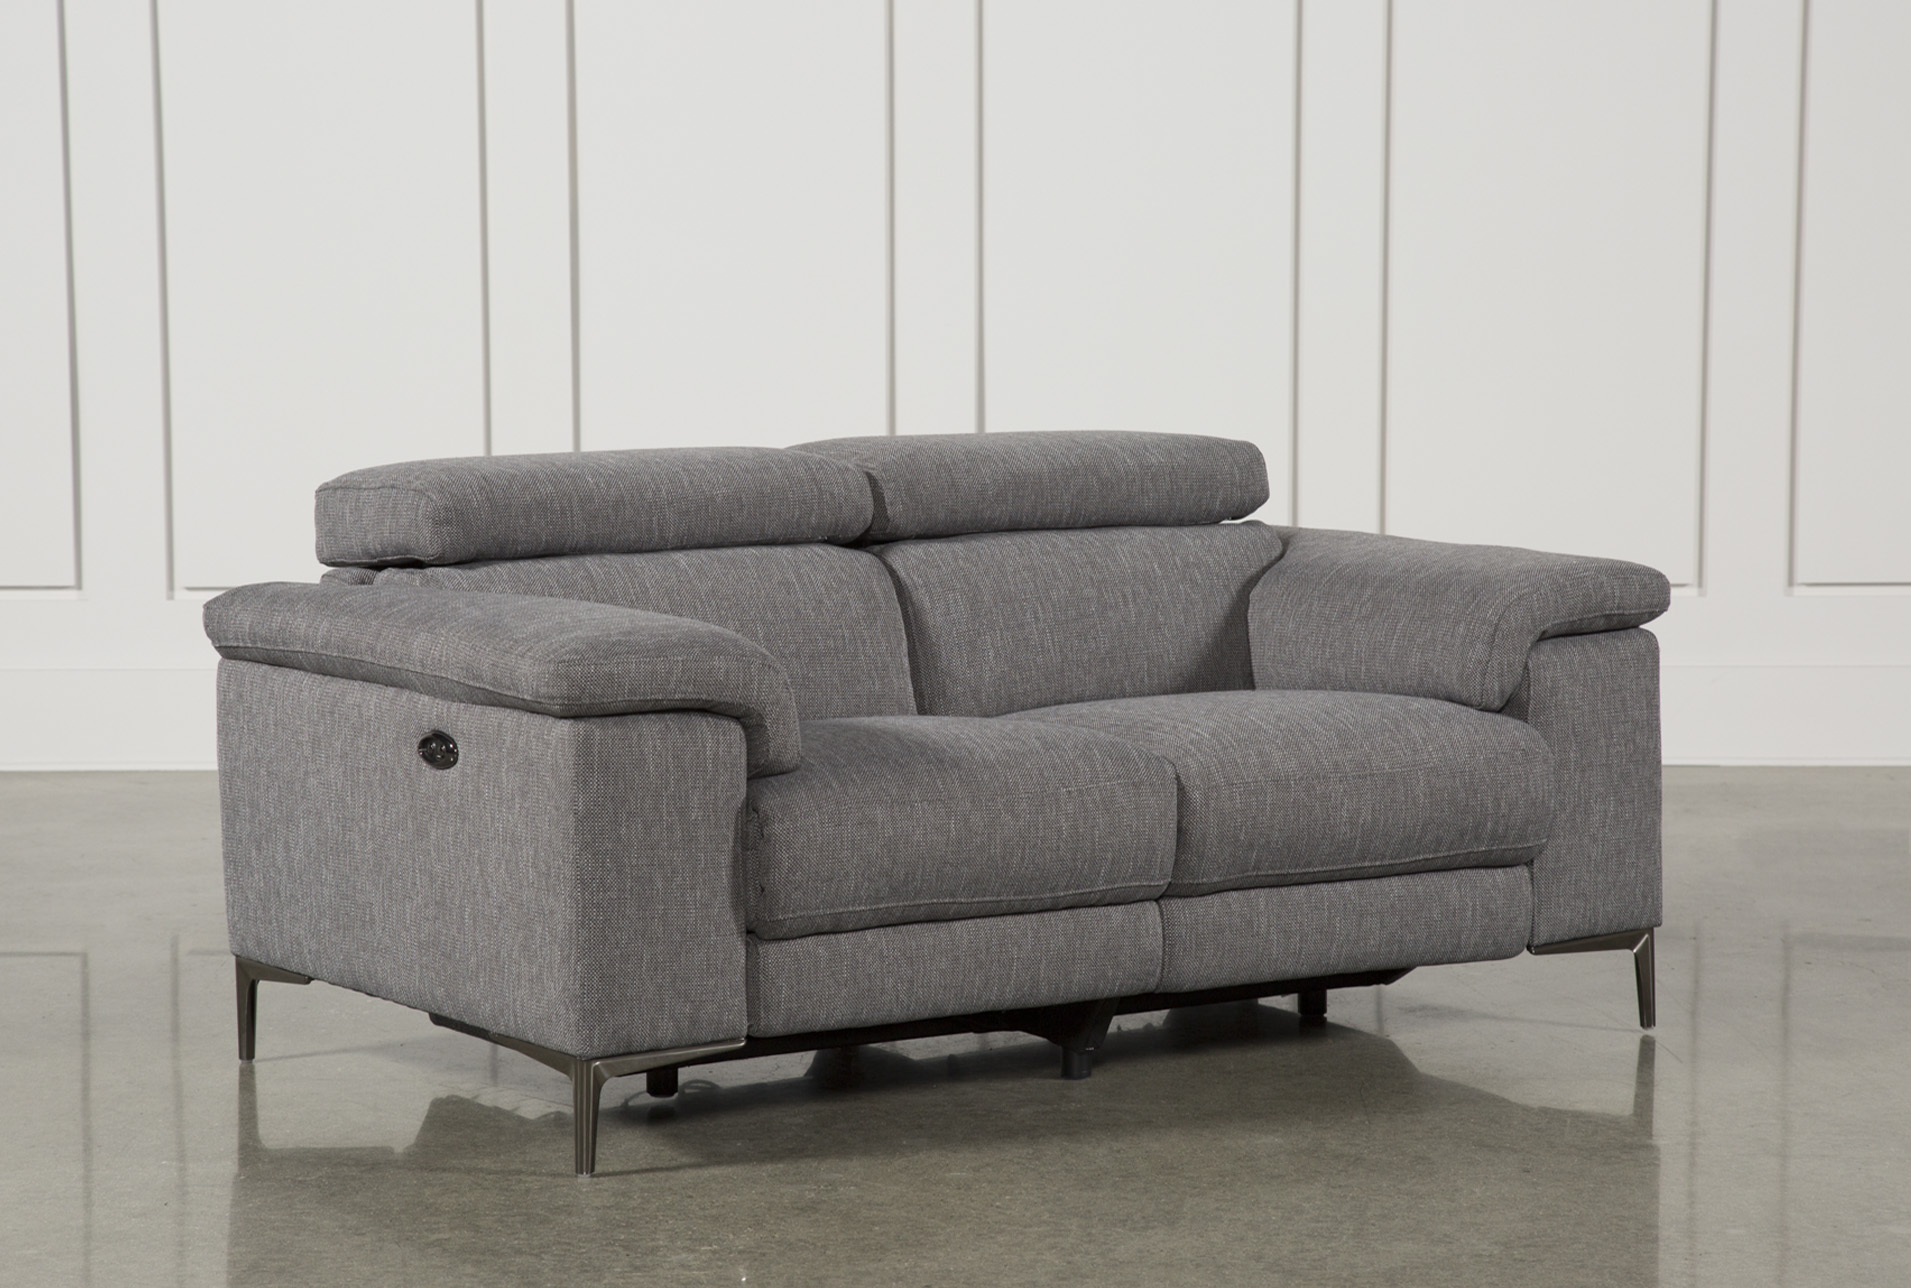 Talin Grey Power Reclining Loveseat W/Usb (Qty: 1) has been successfully  added to your Cart.